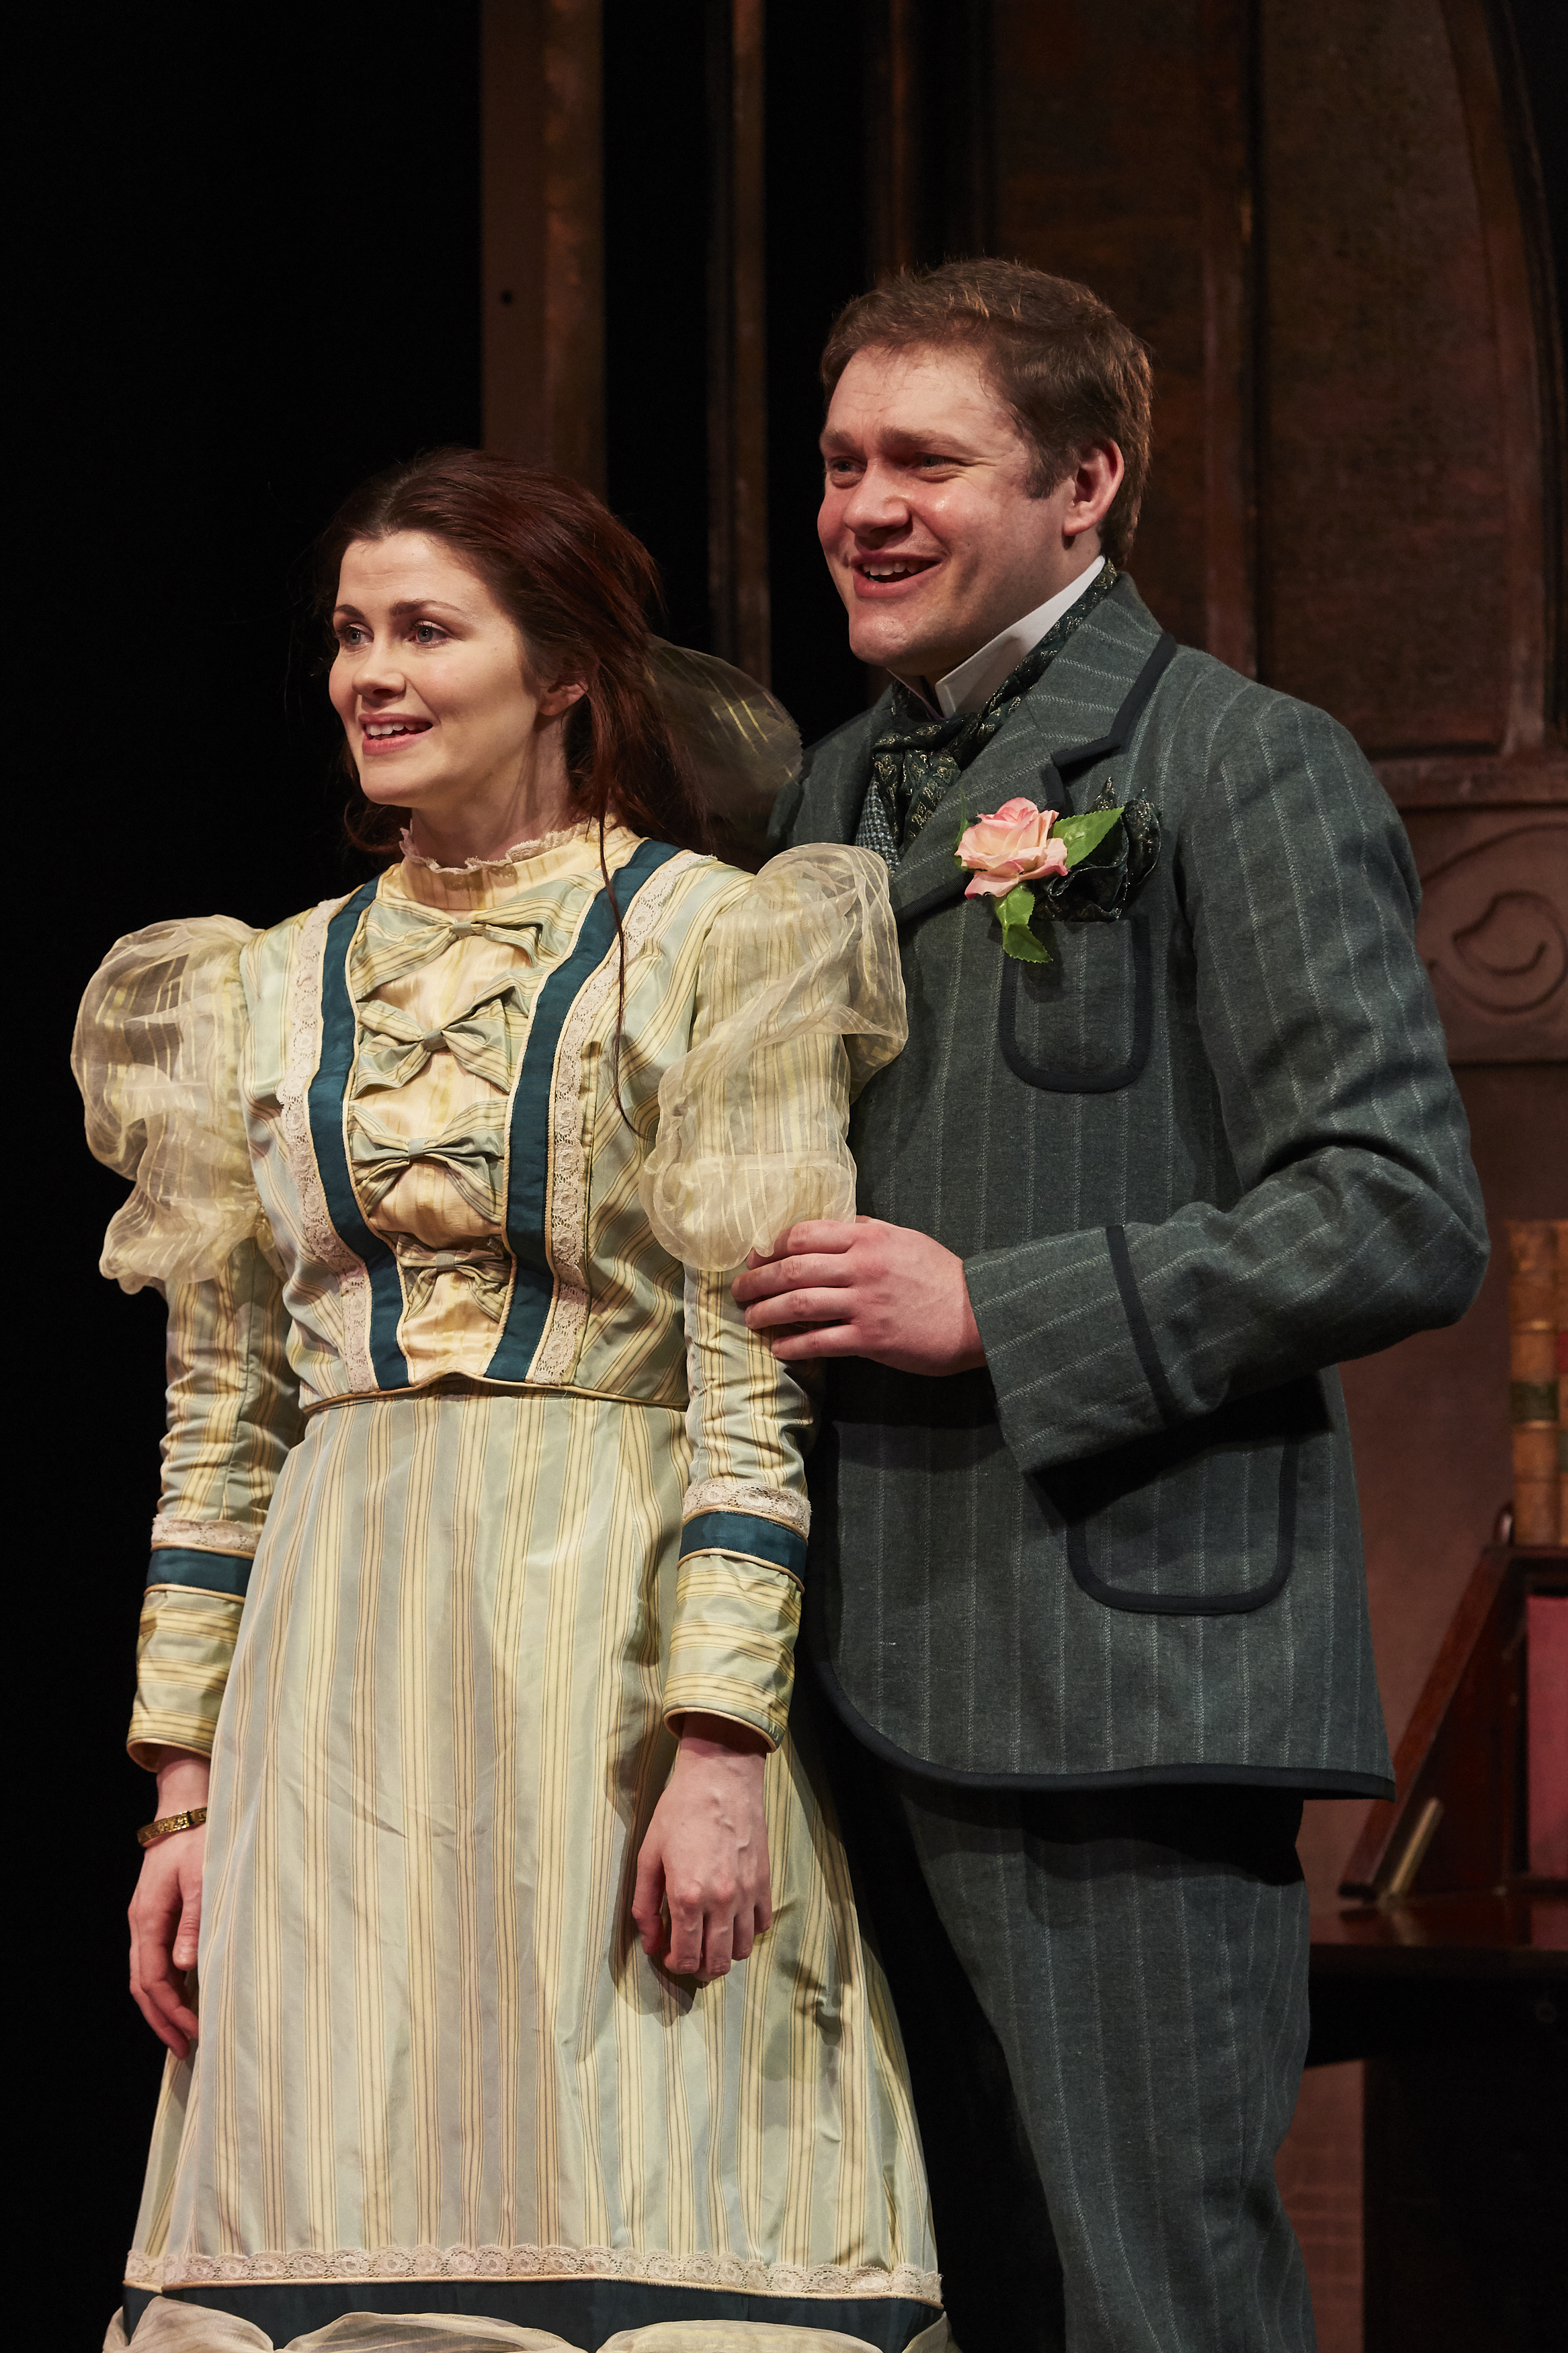 Louise Coulthard as Cecily & Thomas Howes as Algernon in THE IMPORTANCE OF BEING EARNEST, credit The Other Richard